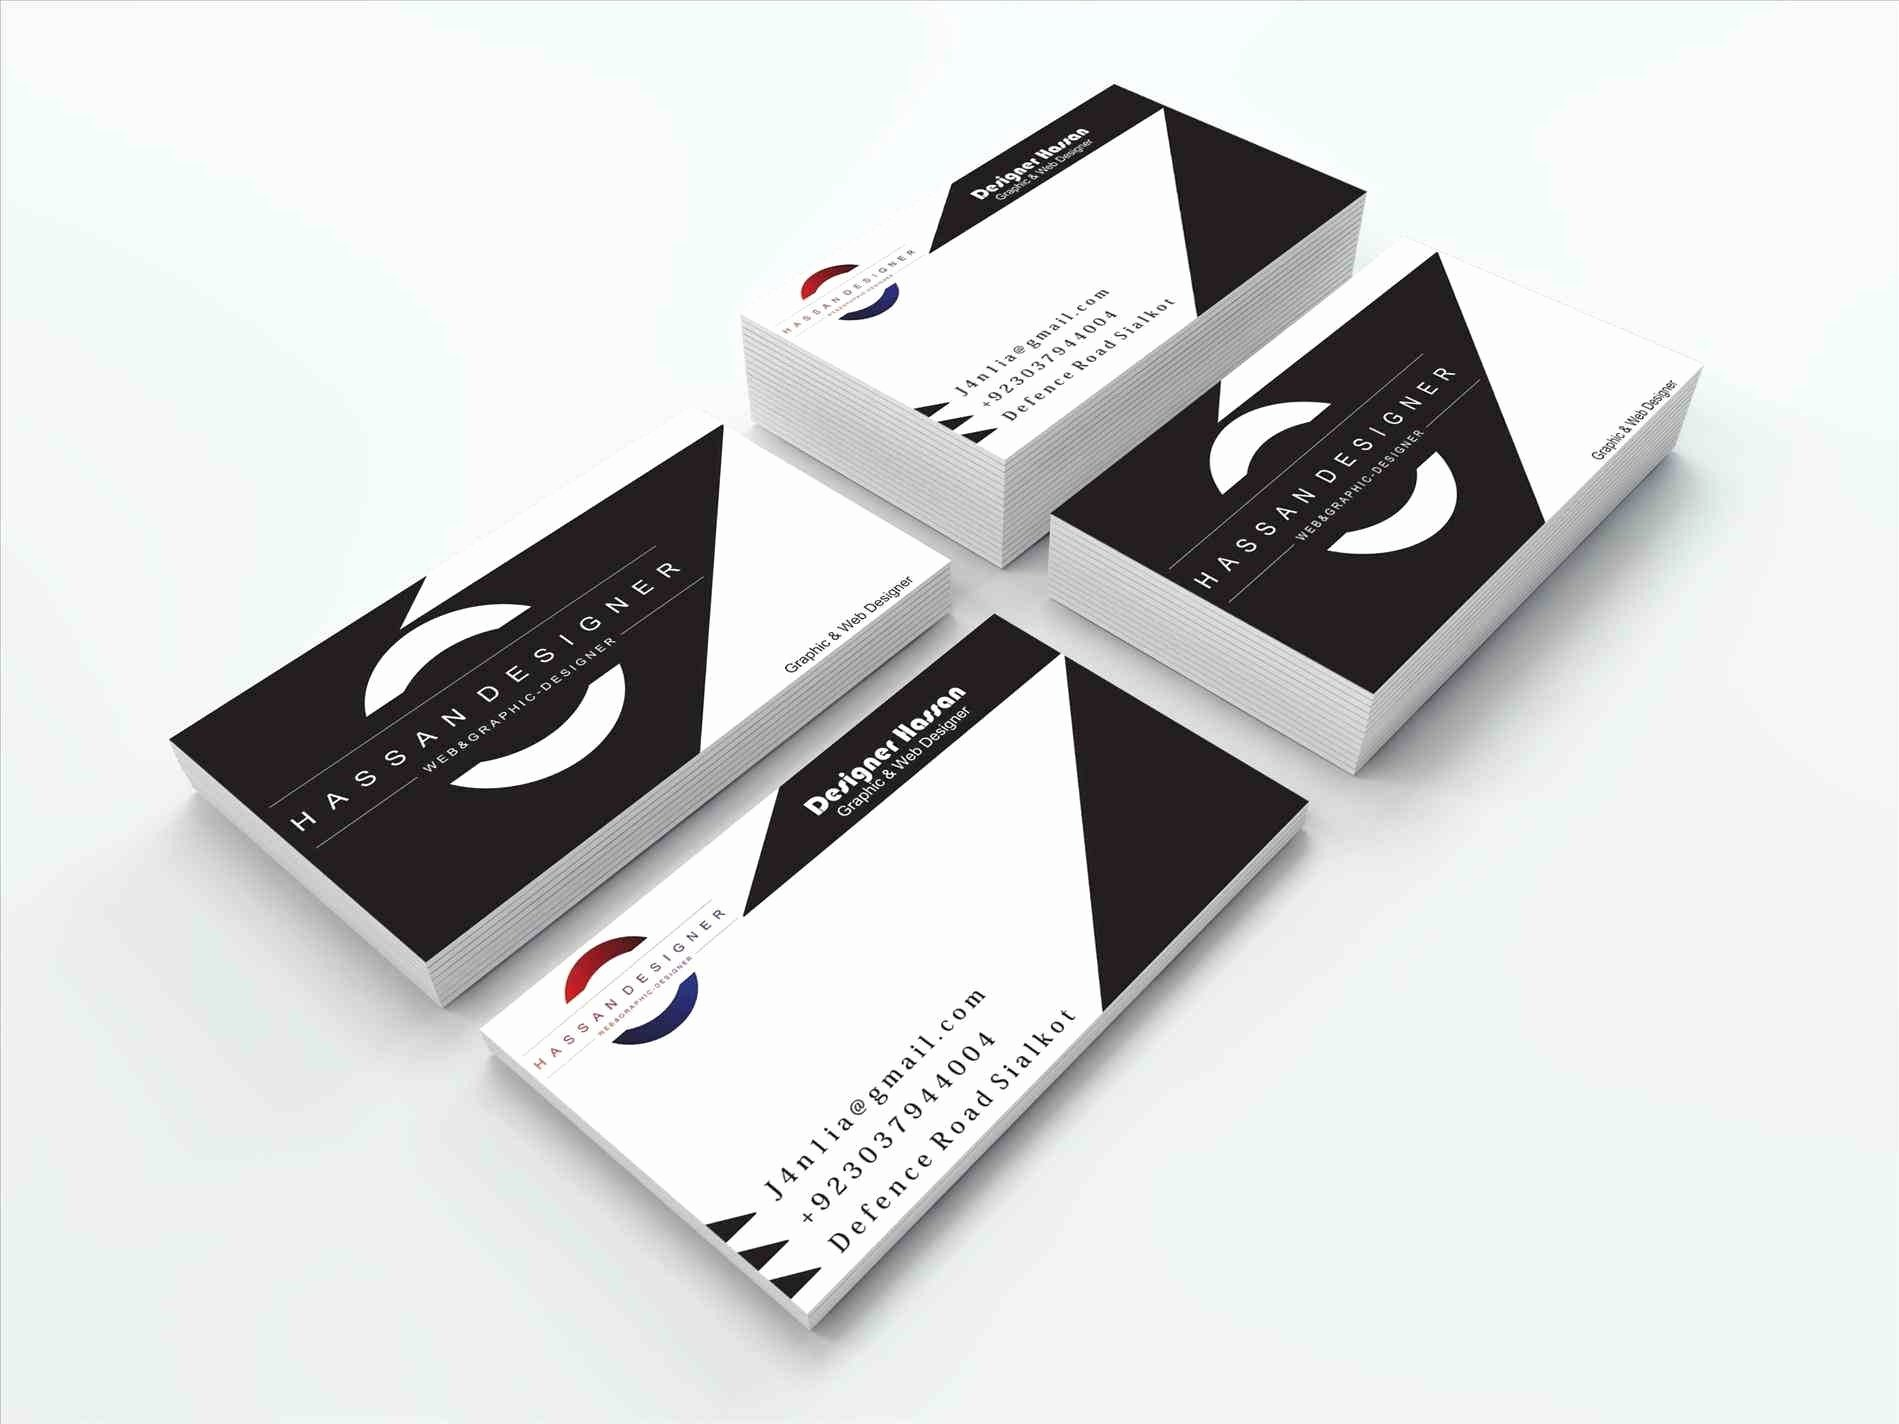 Staples Business Cards Template Inspirational Staples Heavyweight Business Cards Template Paramythia Docs